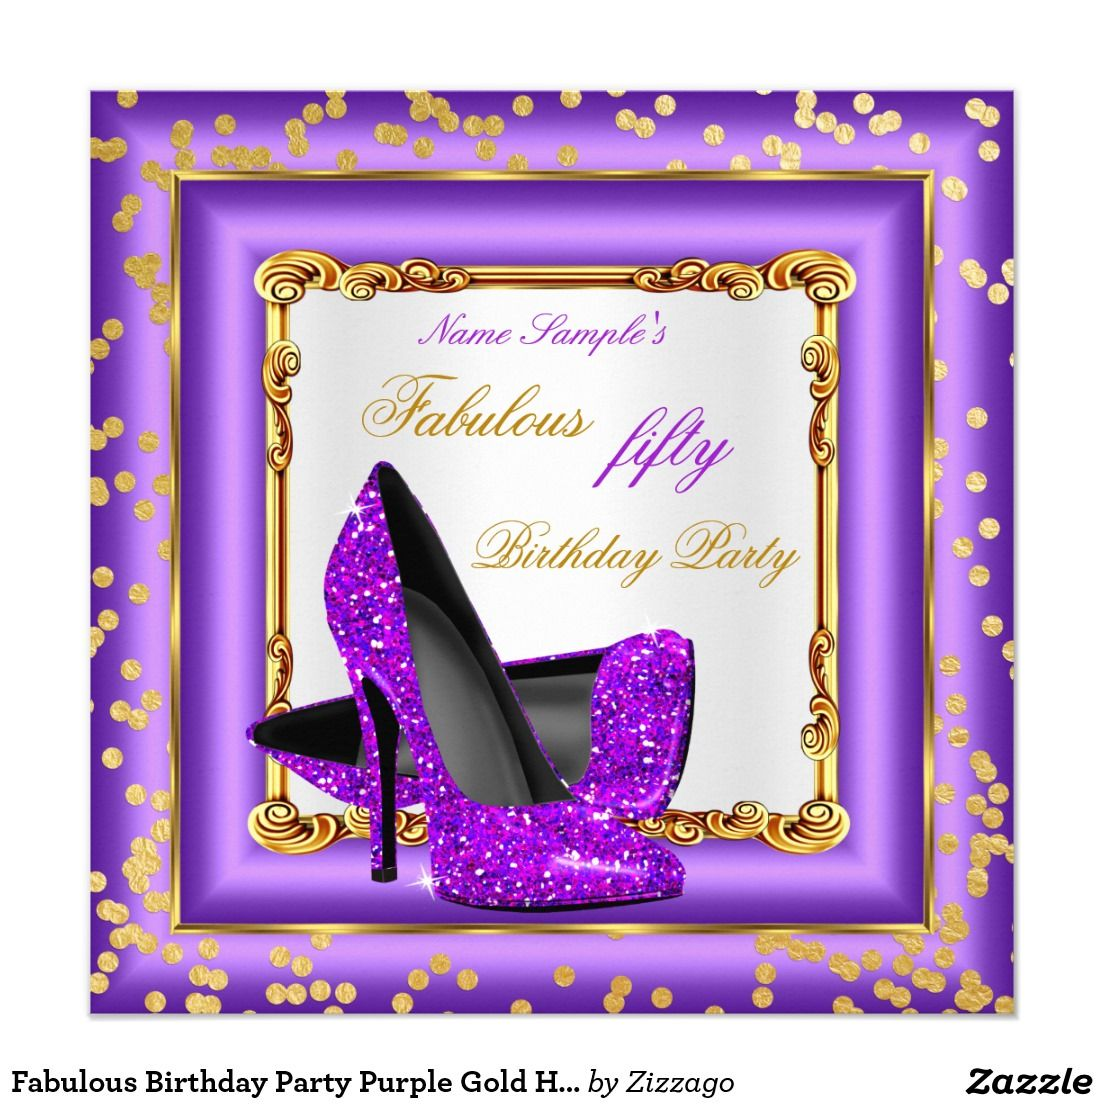 Fabulous Birthday Party Purple Gold High Heels Card Purple gold